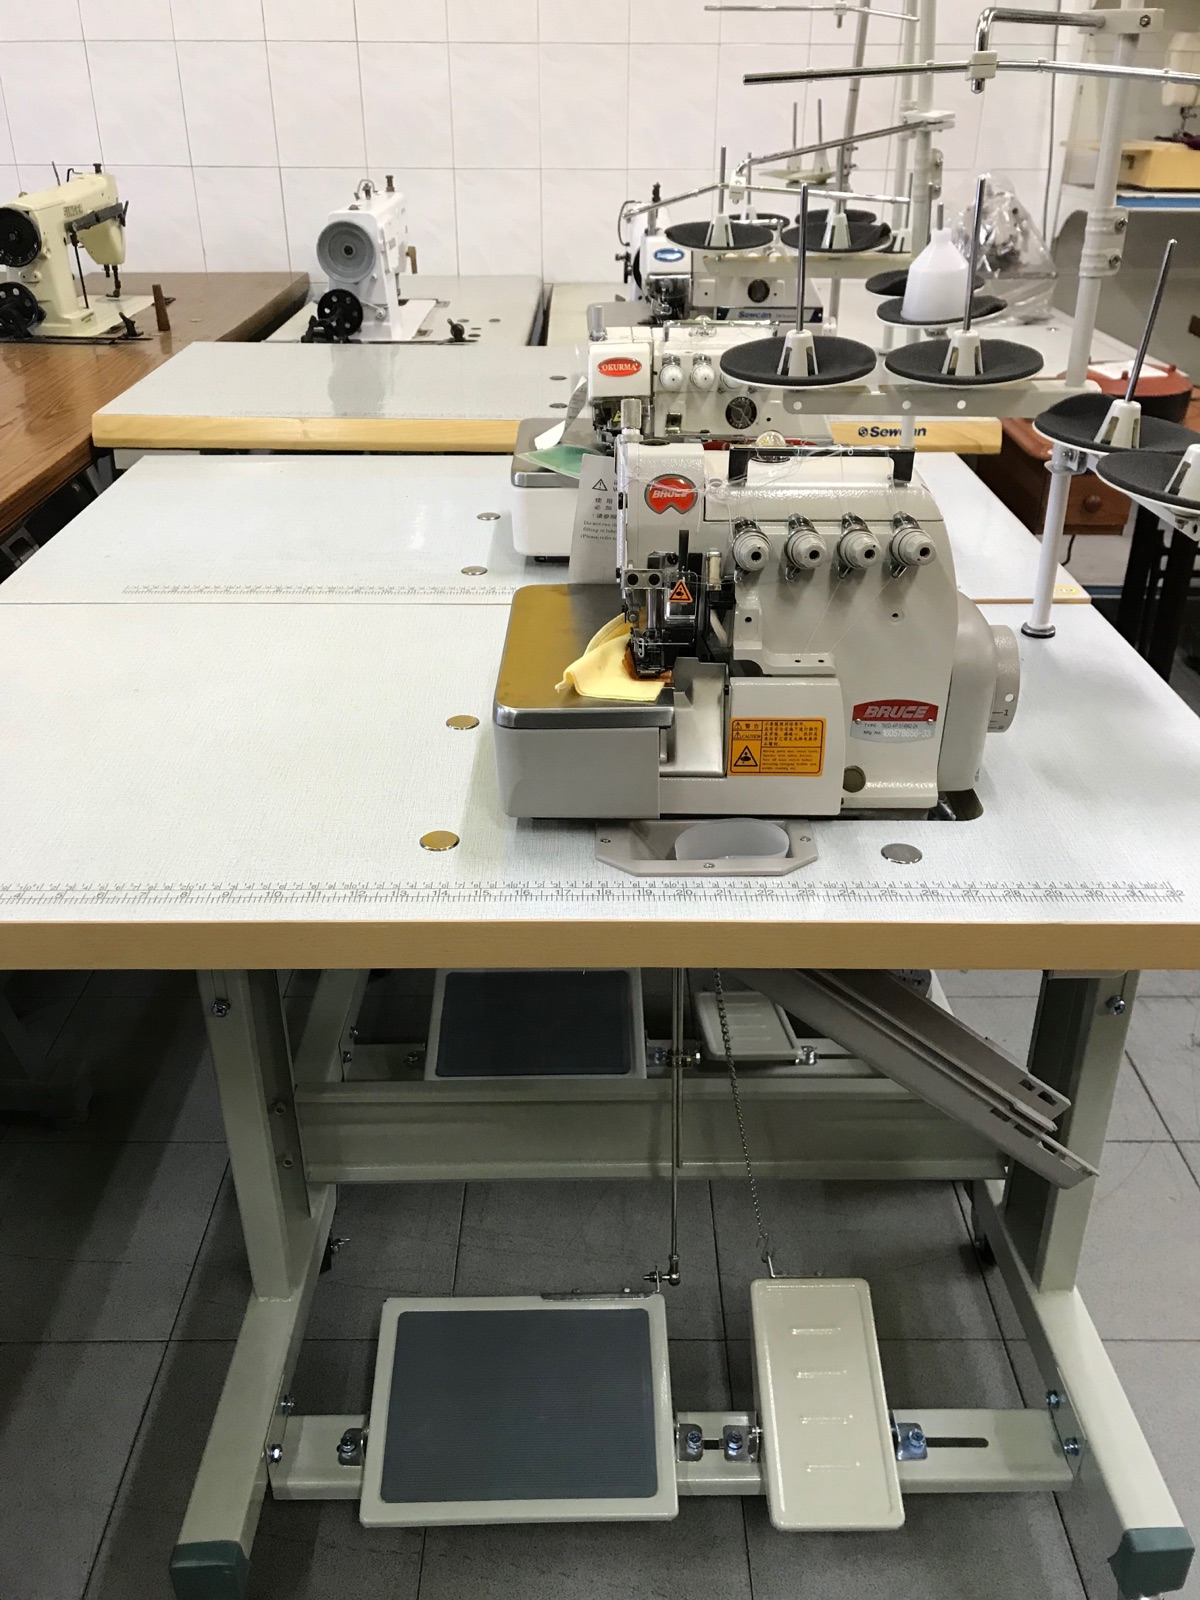 New Bruce Overlock Sewing Machine